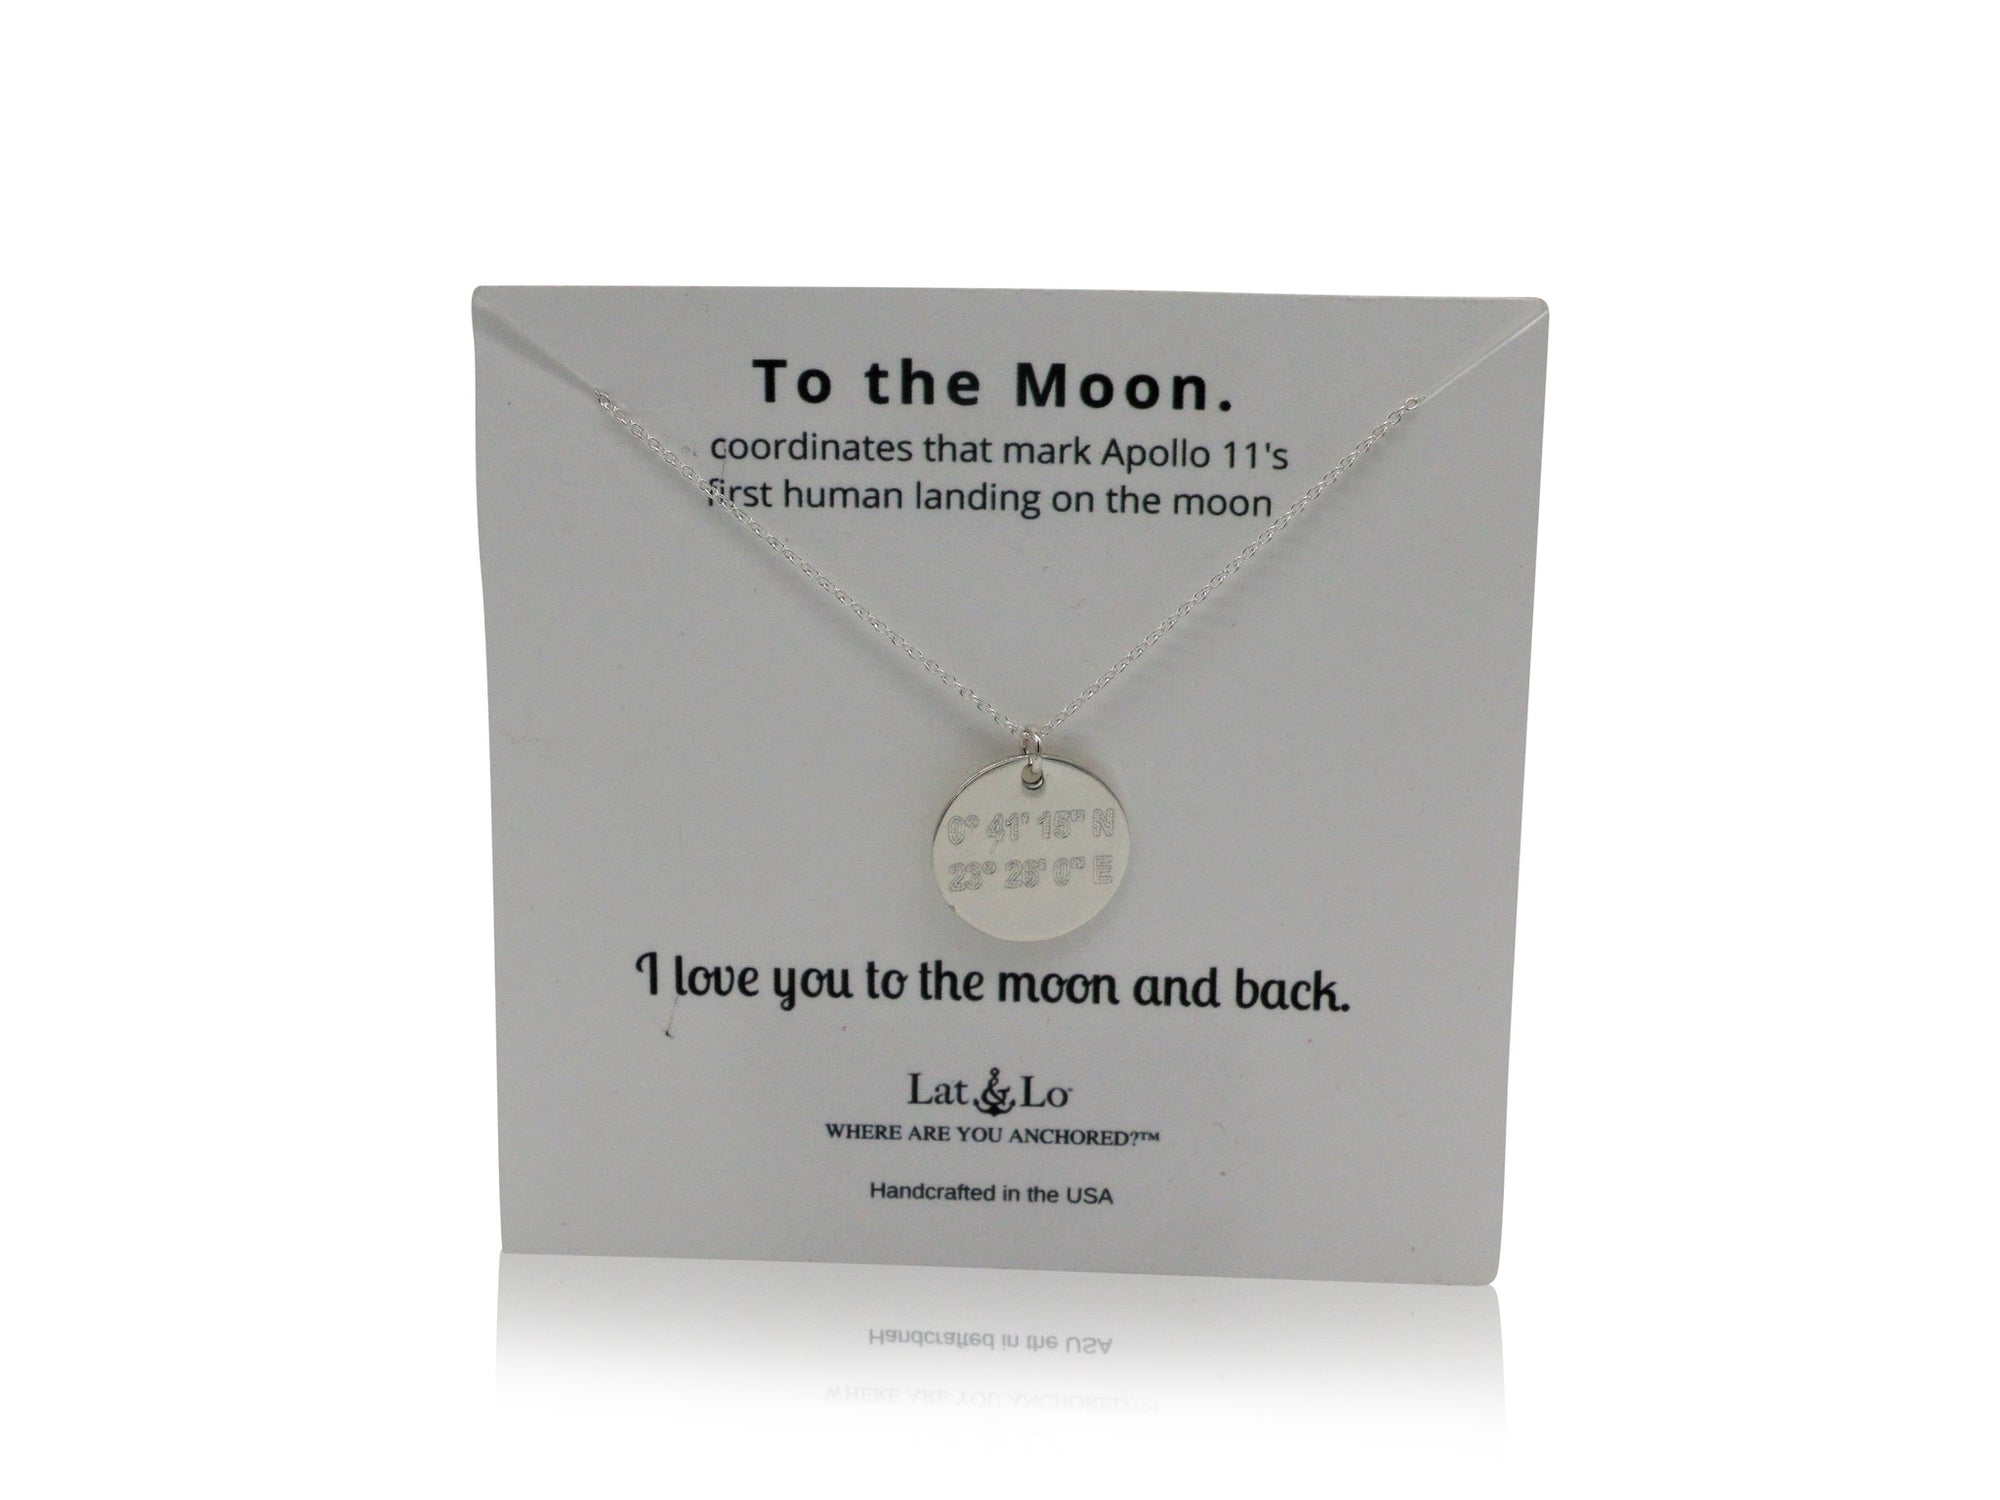 Lat & Lo Disc necklace, on To the Moon display card, inscribed with custom coordinates, sterling silver